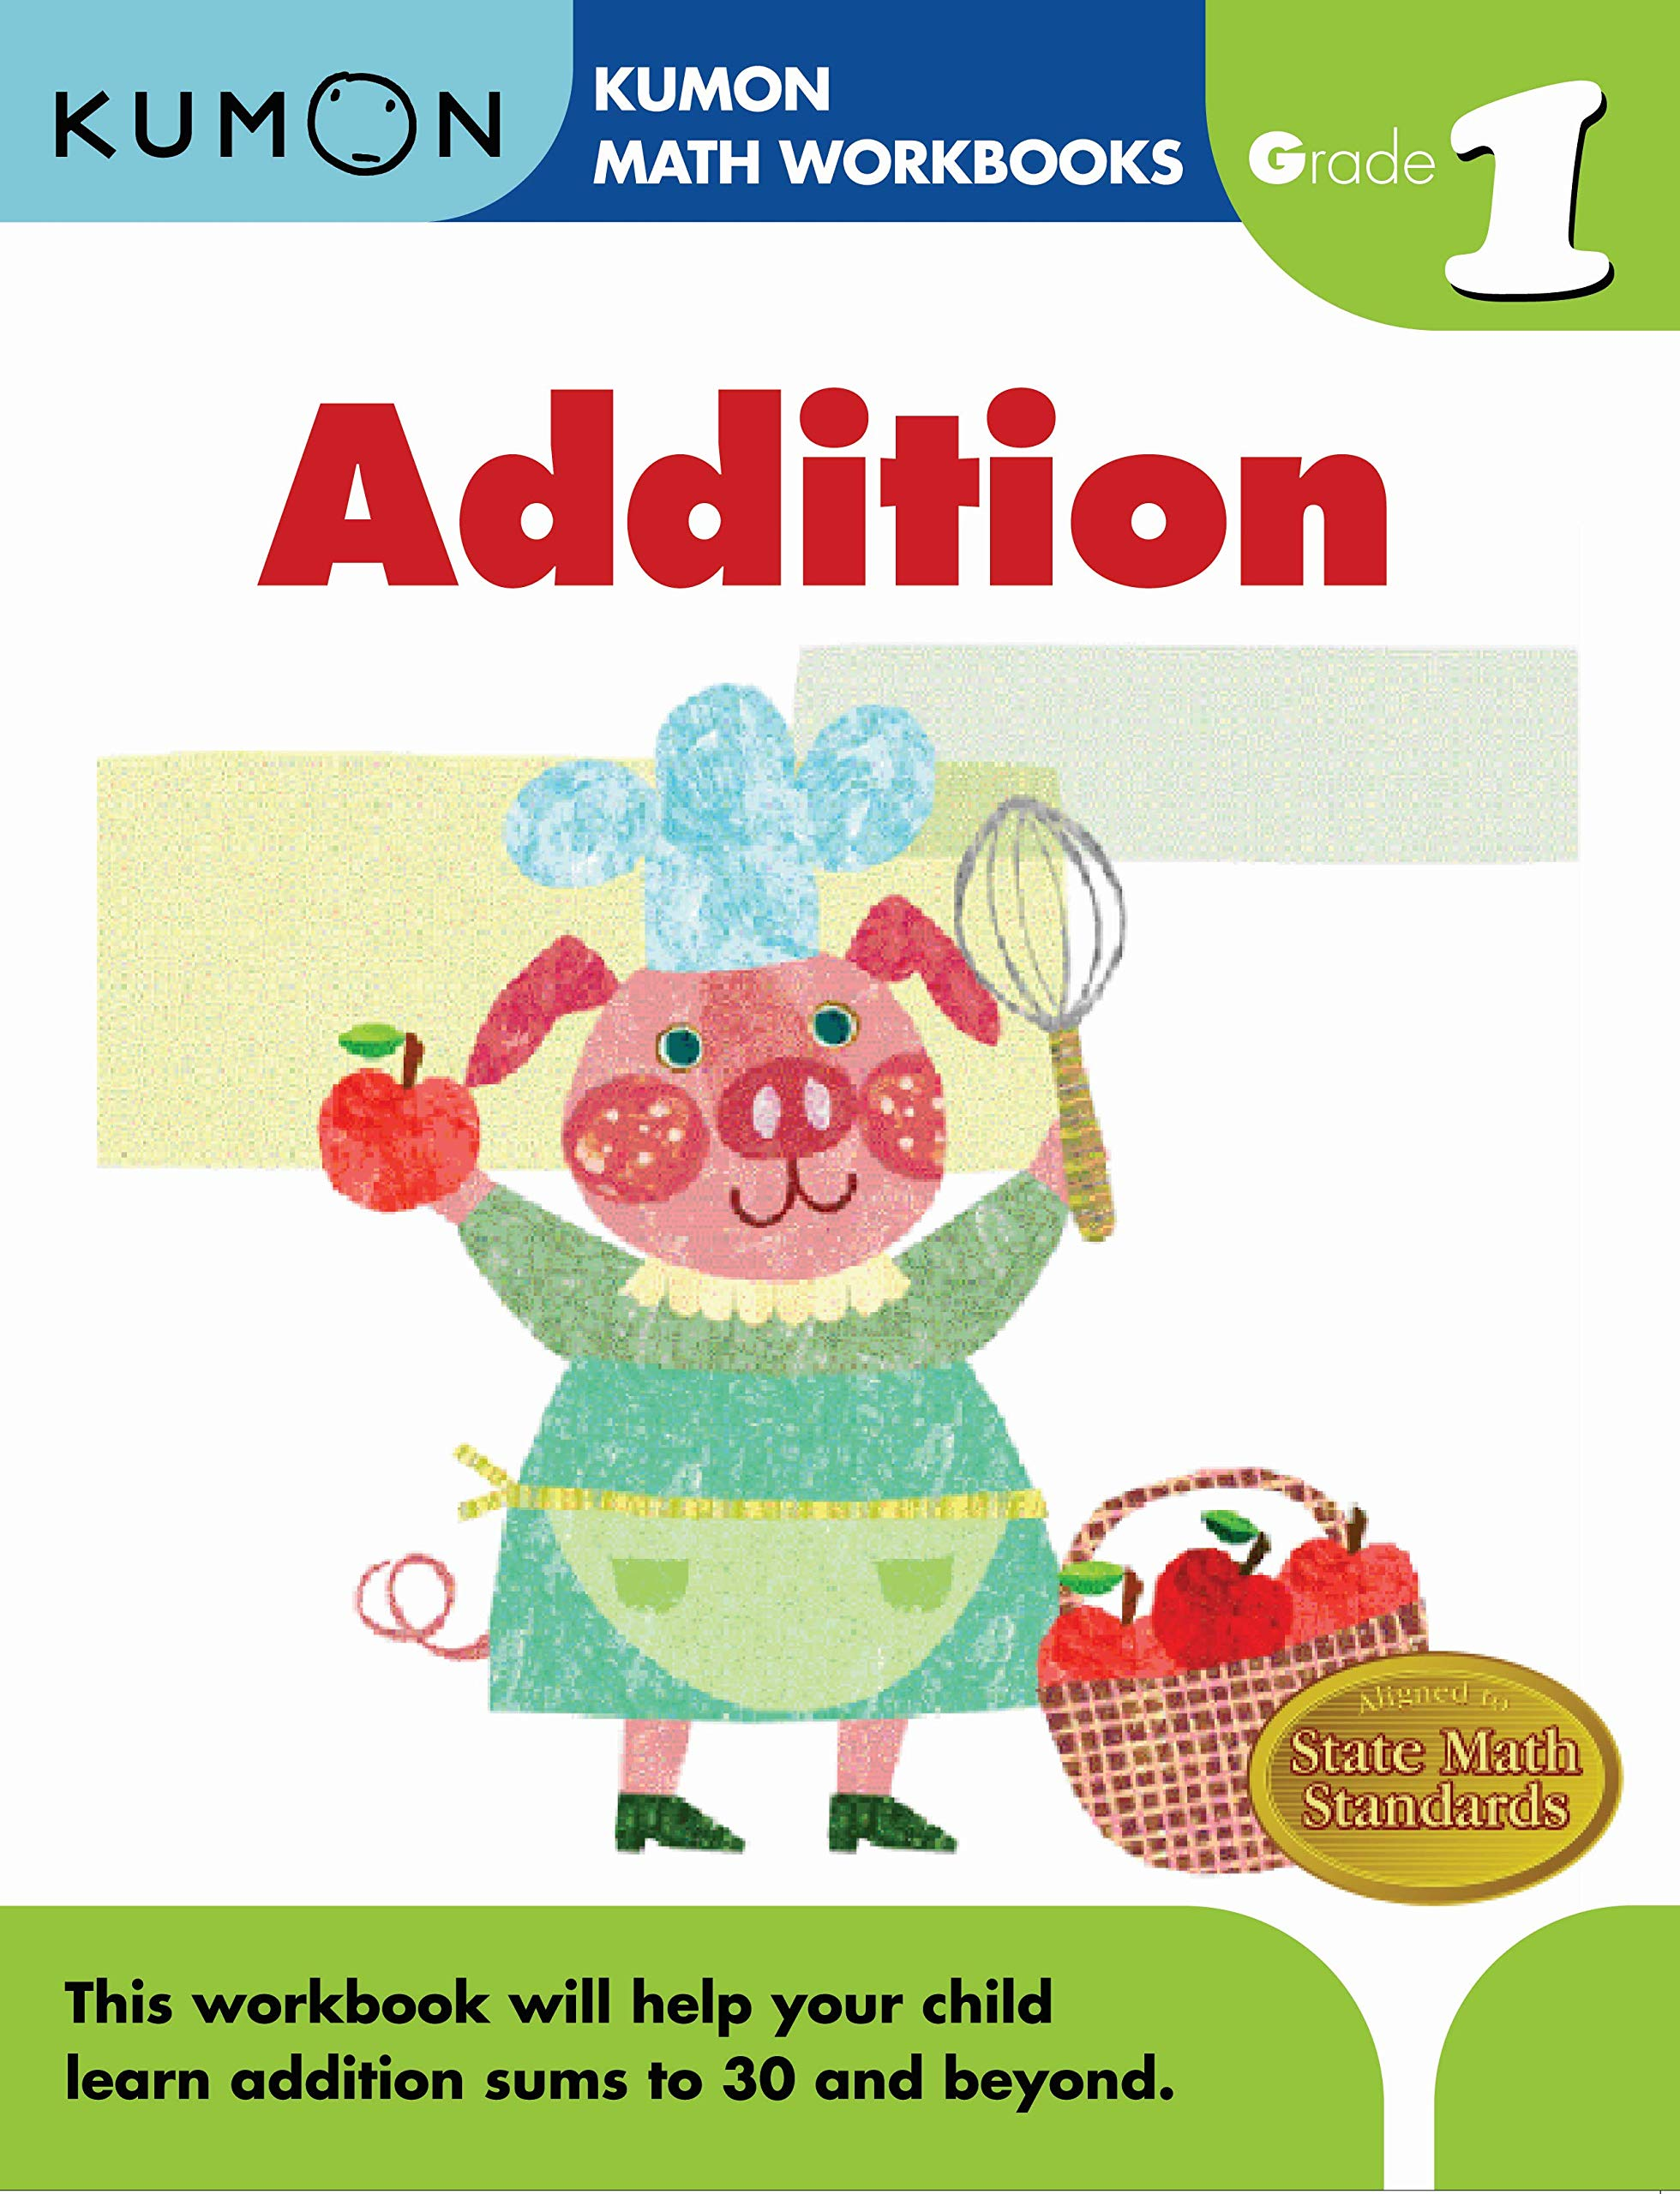 Buy Grade 1 Addition Kumon Math Workbooks Book Online At Low Prices In India Grade 1 Addition Kumon Math Workbooks Reviews Ratings Amazon In [ 2560 x 1960 Pixel ]